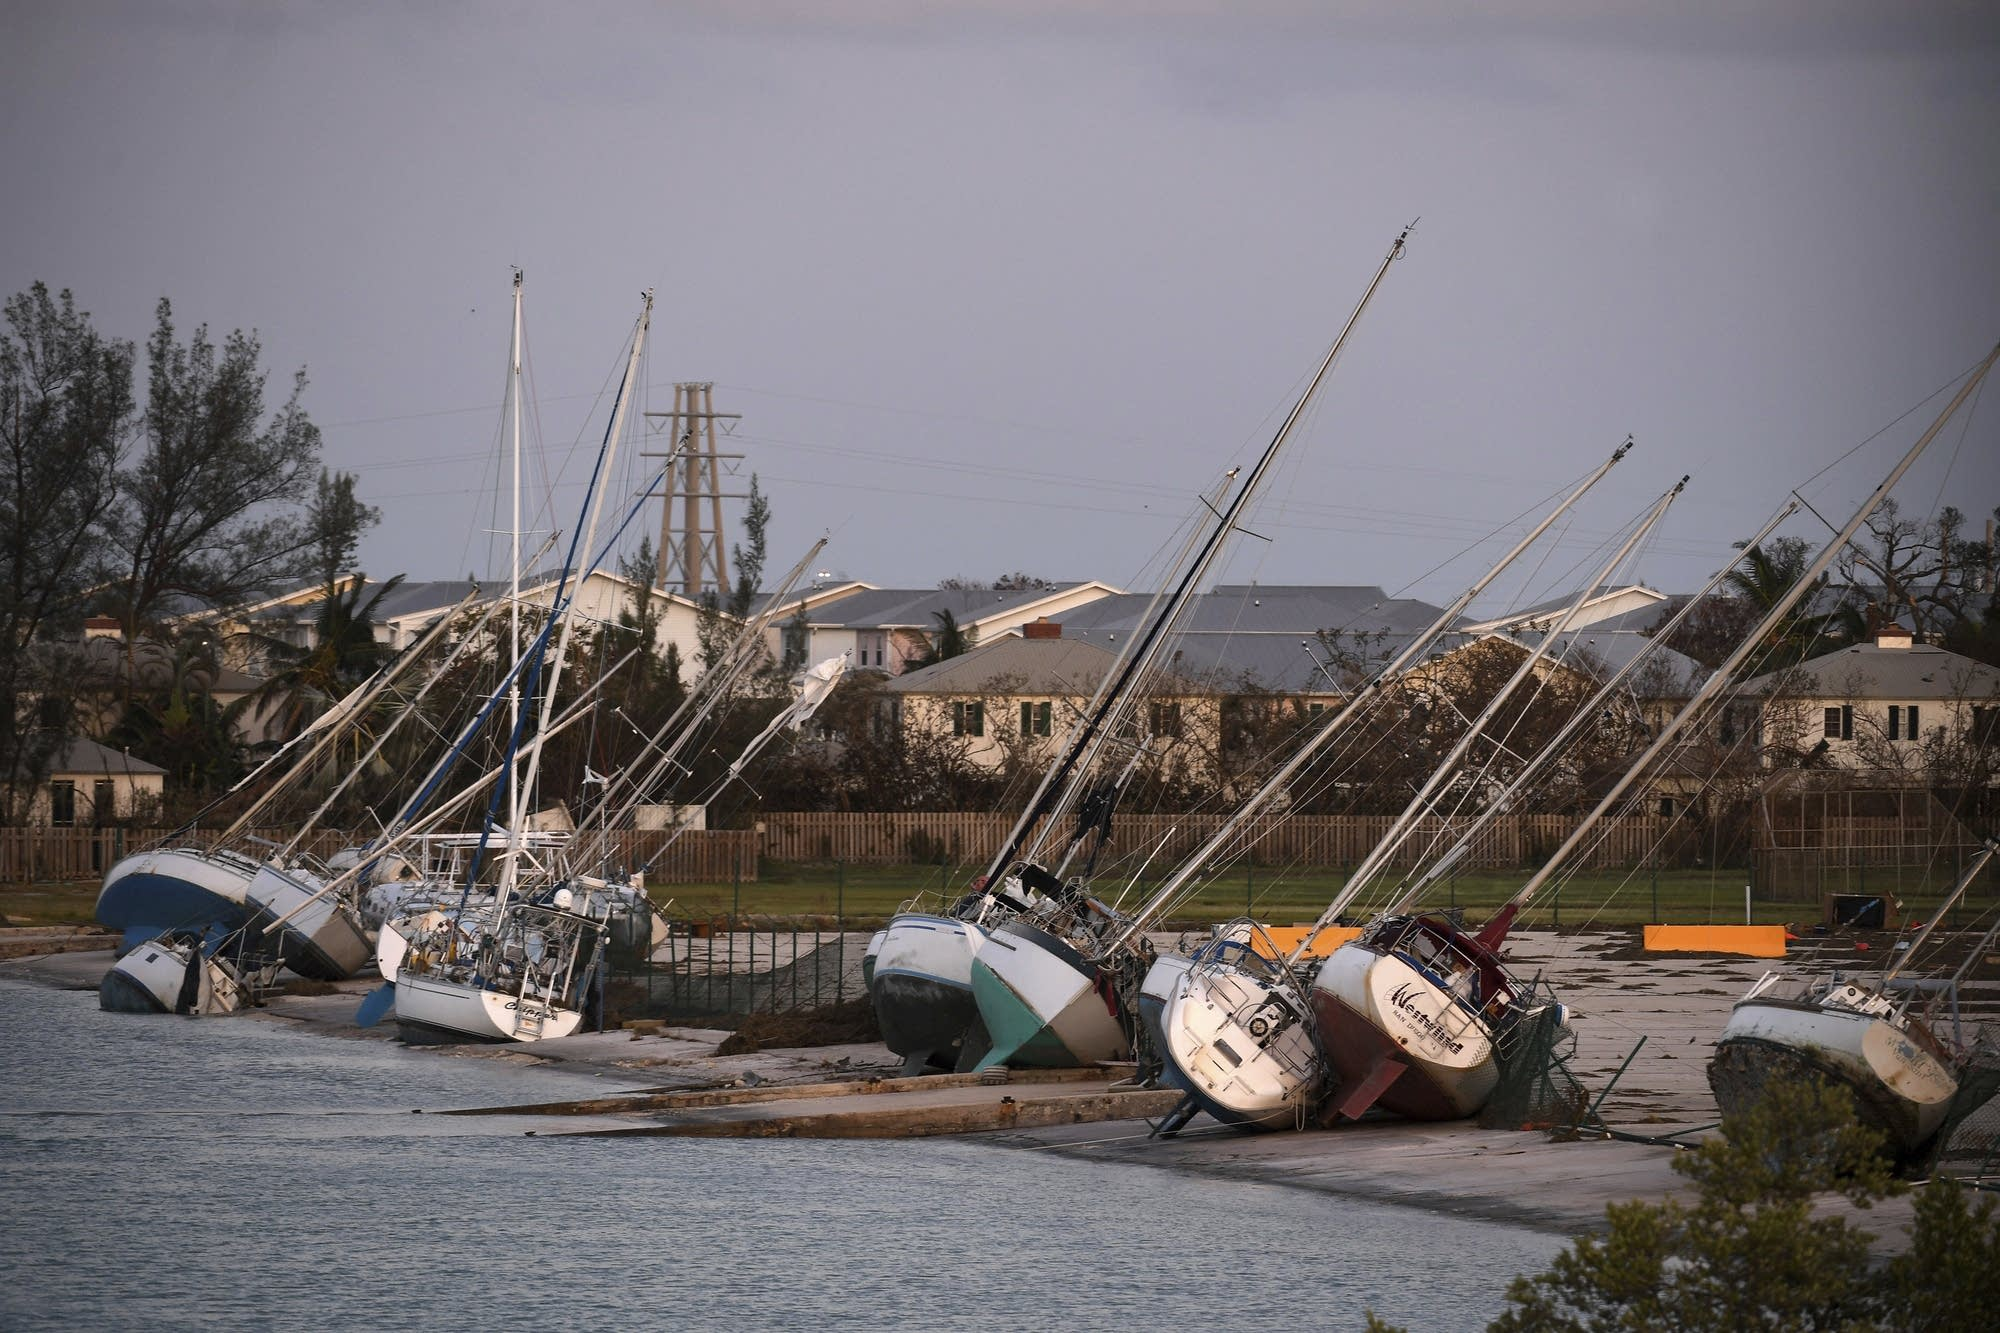 Damaged sailboats are shown in the aftermath of Hurricane Irma.